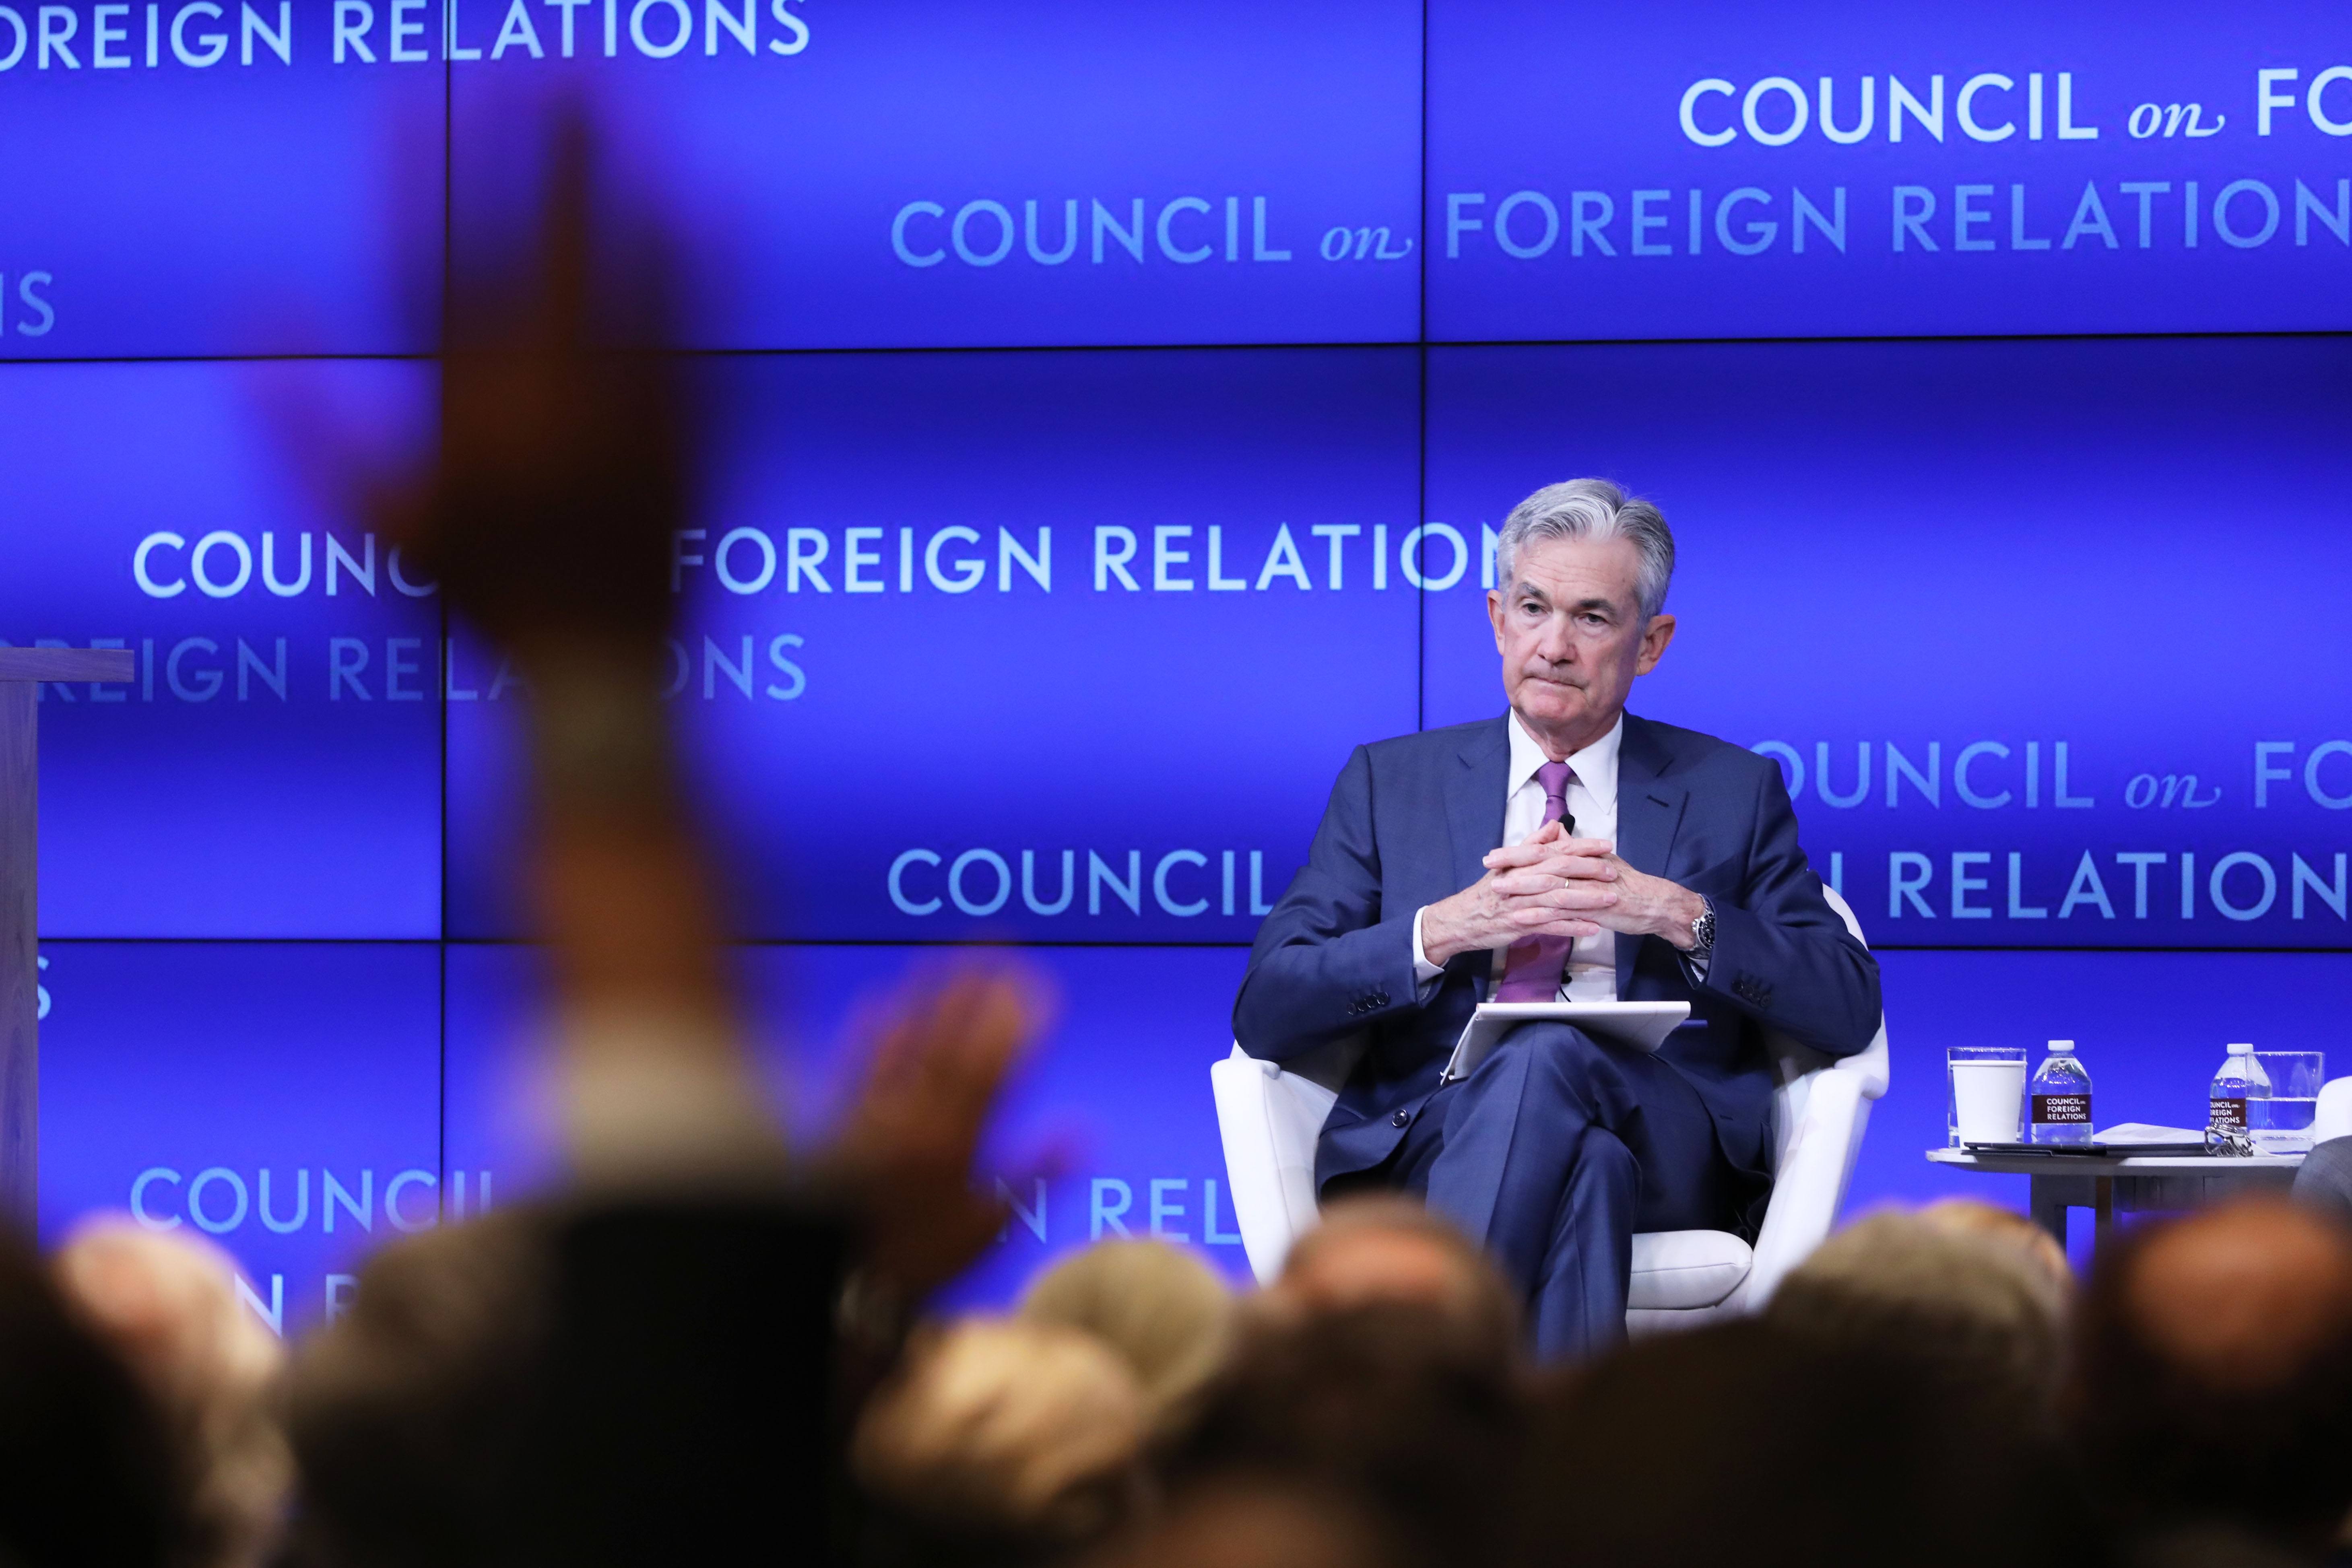 Jerome Powell (left), chairman of the Board of Governors of the Federal Reserve, takes questions while speaking in conversation with Neil Irwin of the New York Times at the Council on Foreign Relations on June 25, 2019 in New York City. Powell discussed the challenges facing the U.S. economy and the policies of the U.S. Federal Reserve.   (Photo by Spencer Platt/Getty Images)